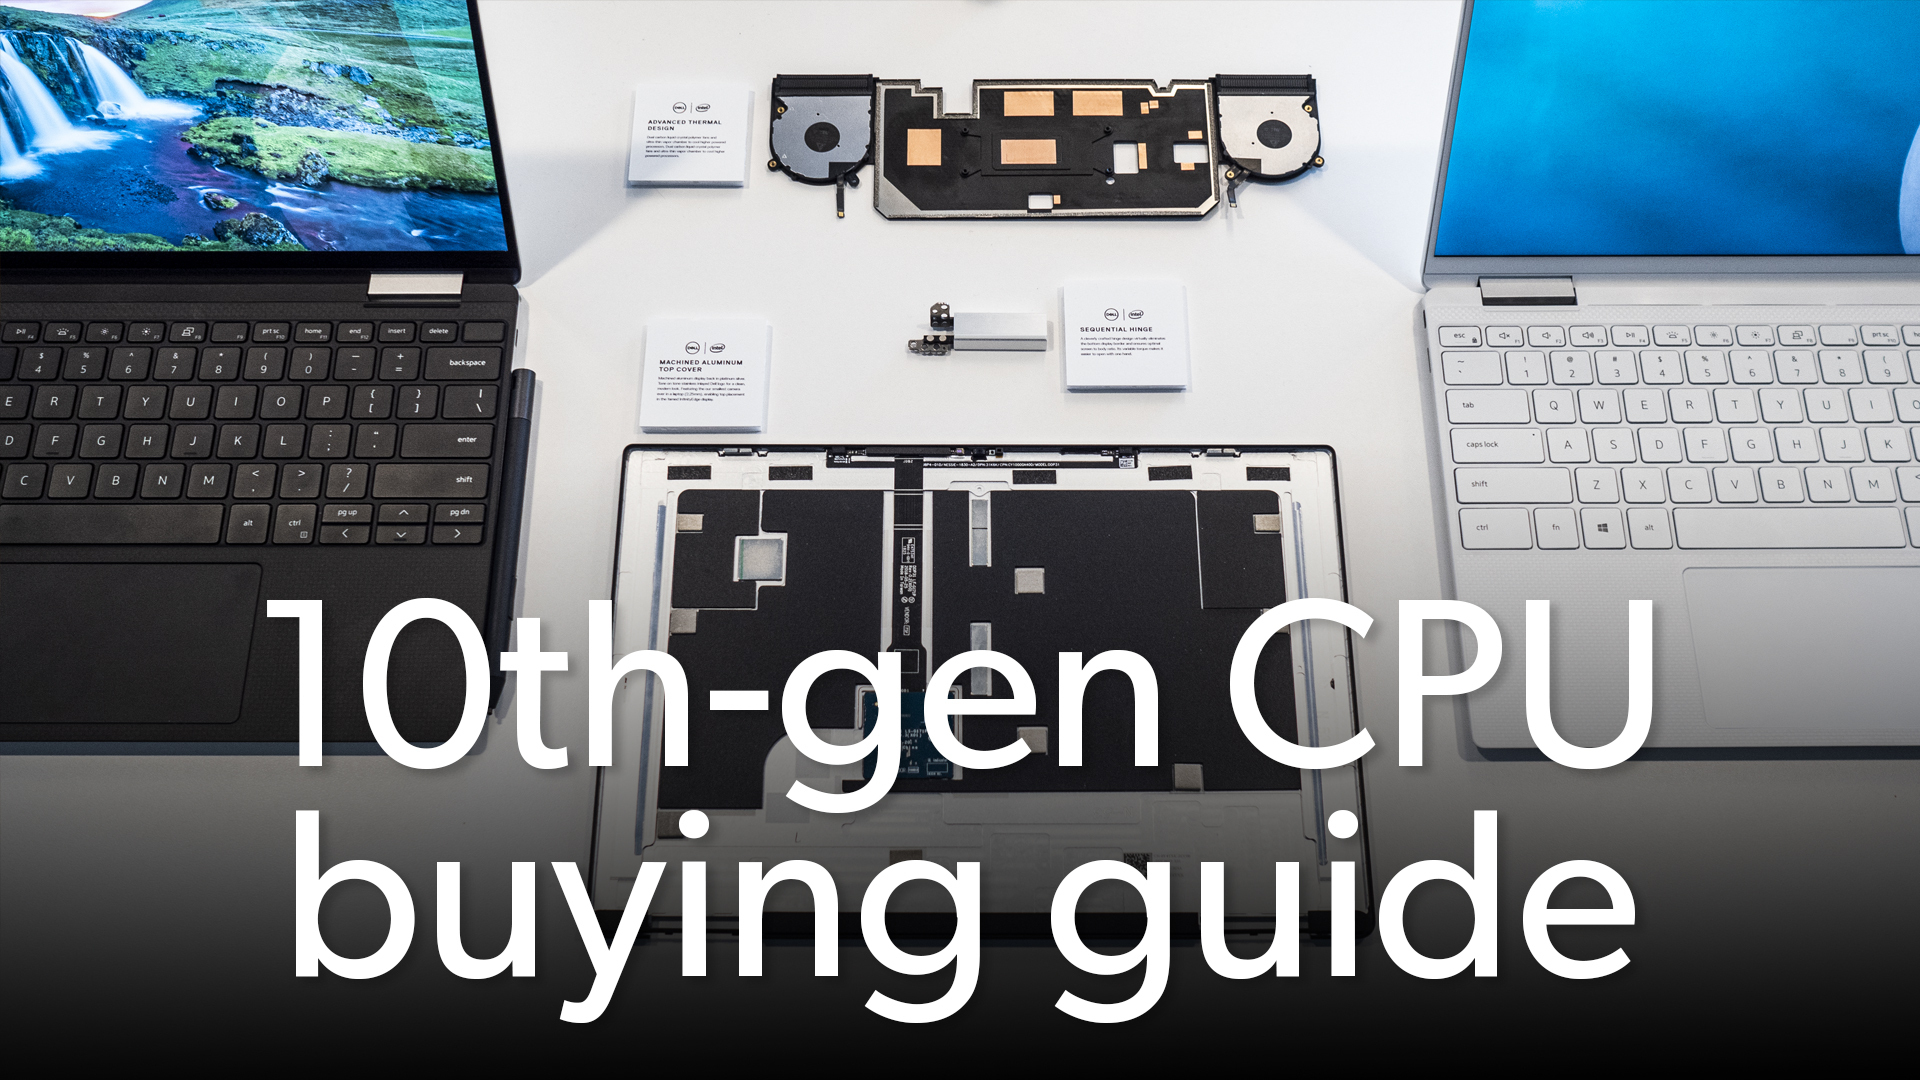 How to buy the best 10th-gen CPU